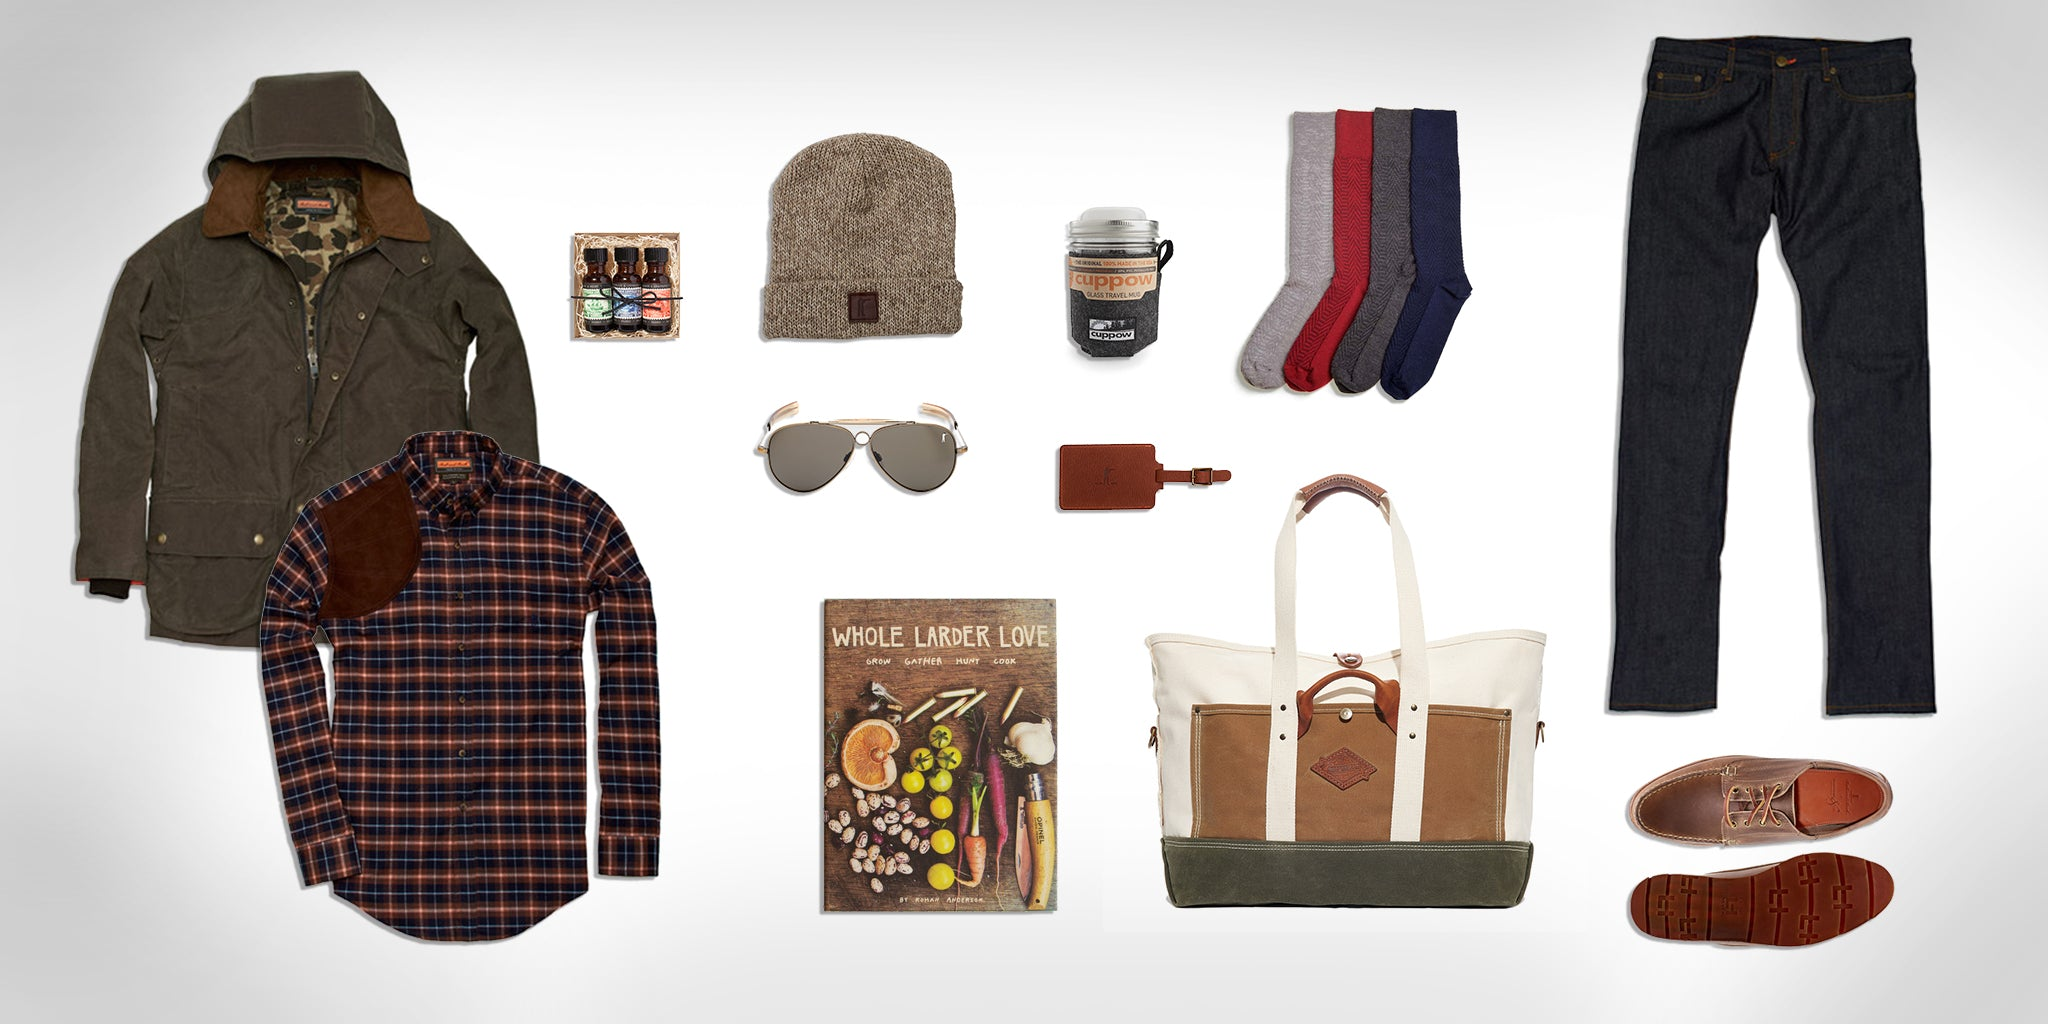 Jetset Gift Guide by Ball and Buck